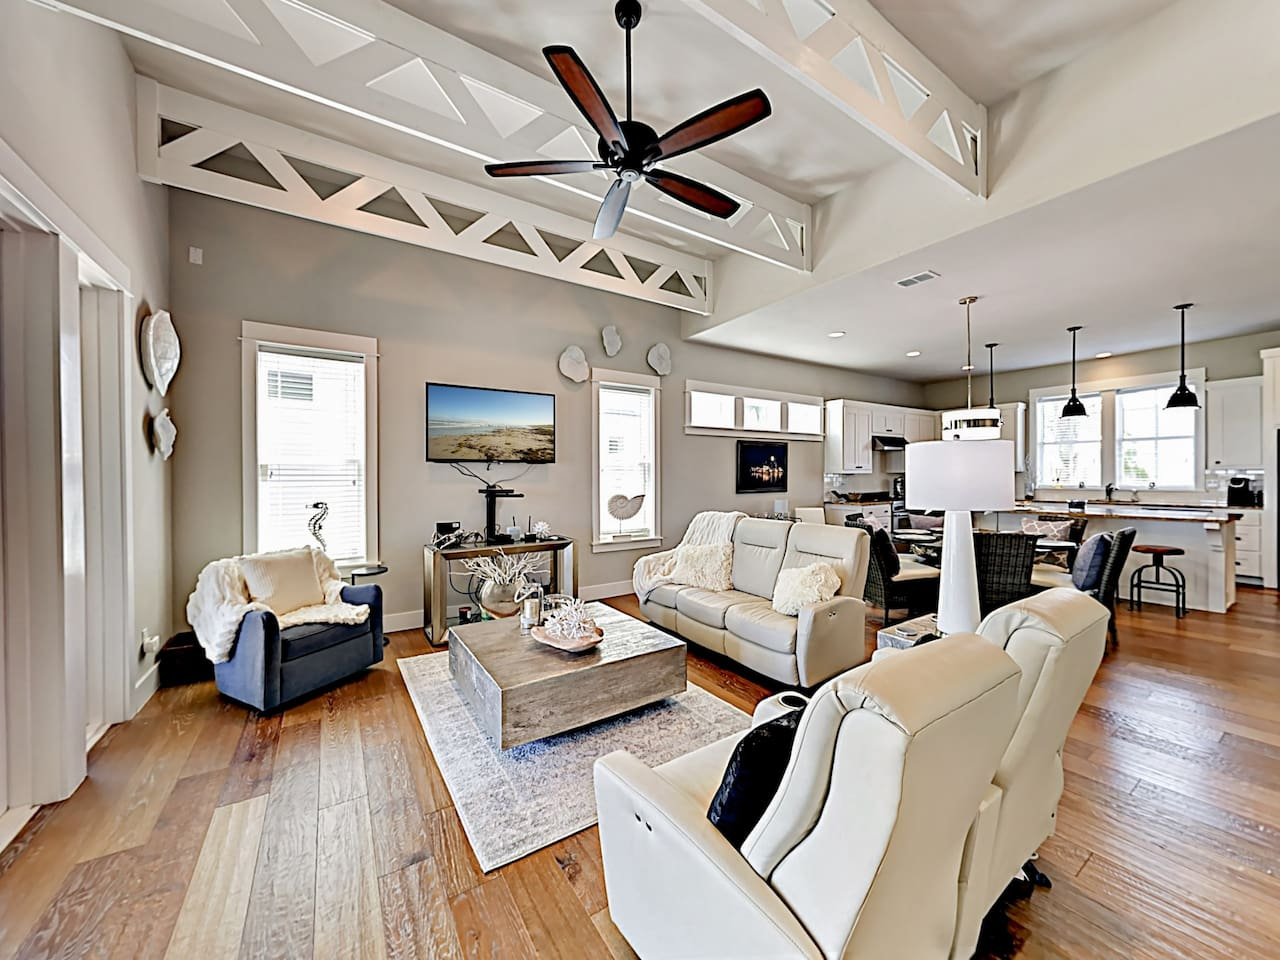 Welcome to Rockport! This stunning home is professionally managed by TurnKey Vacation Rentals.